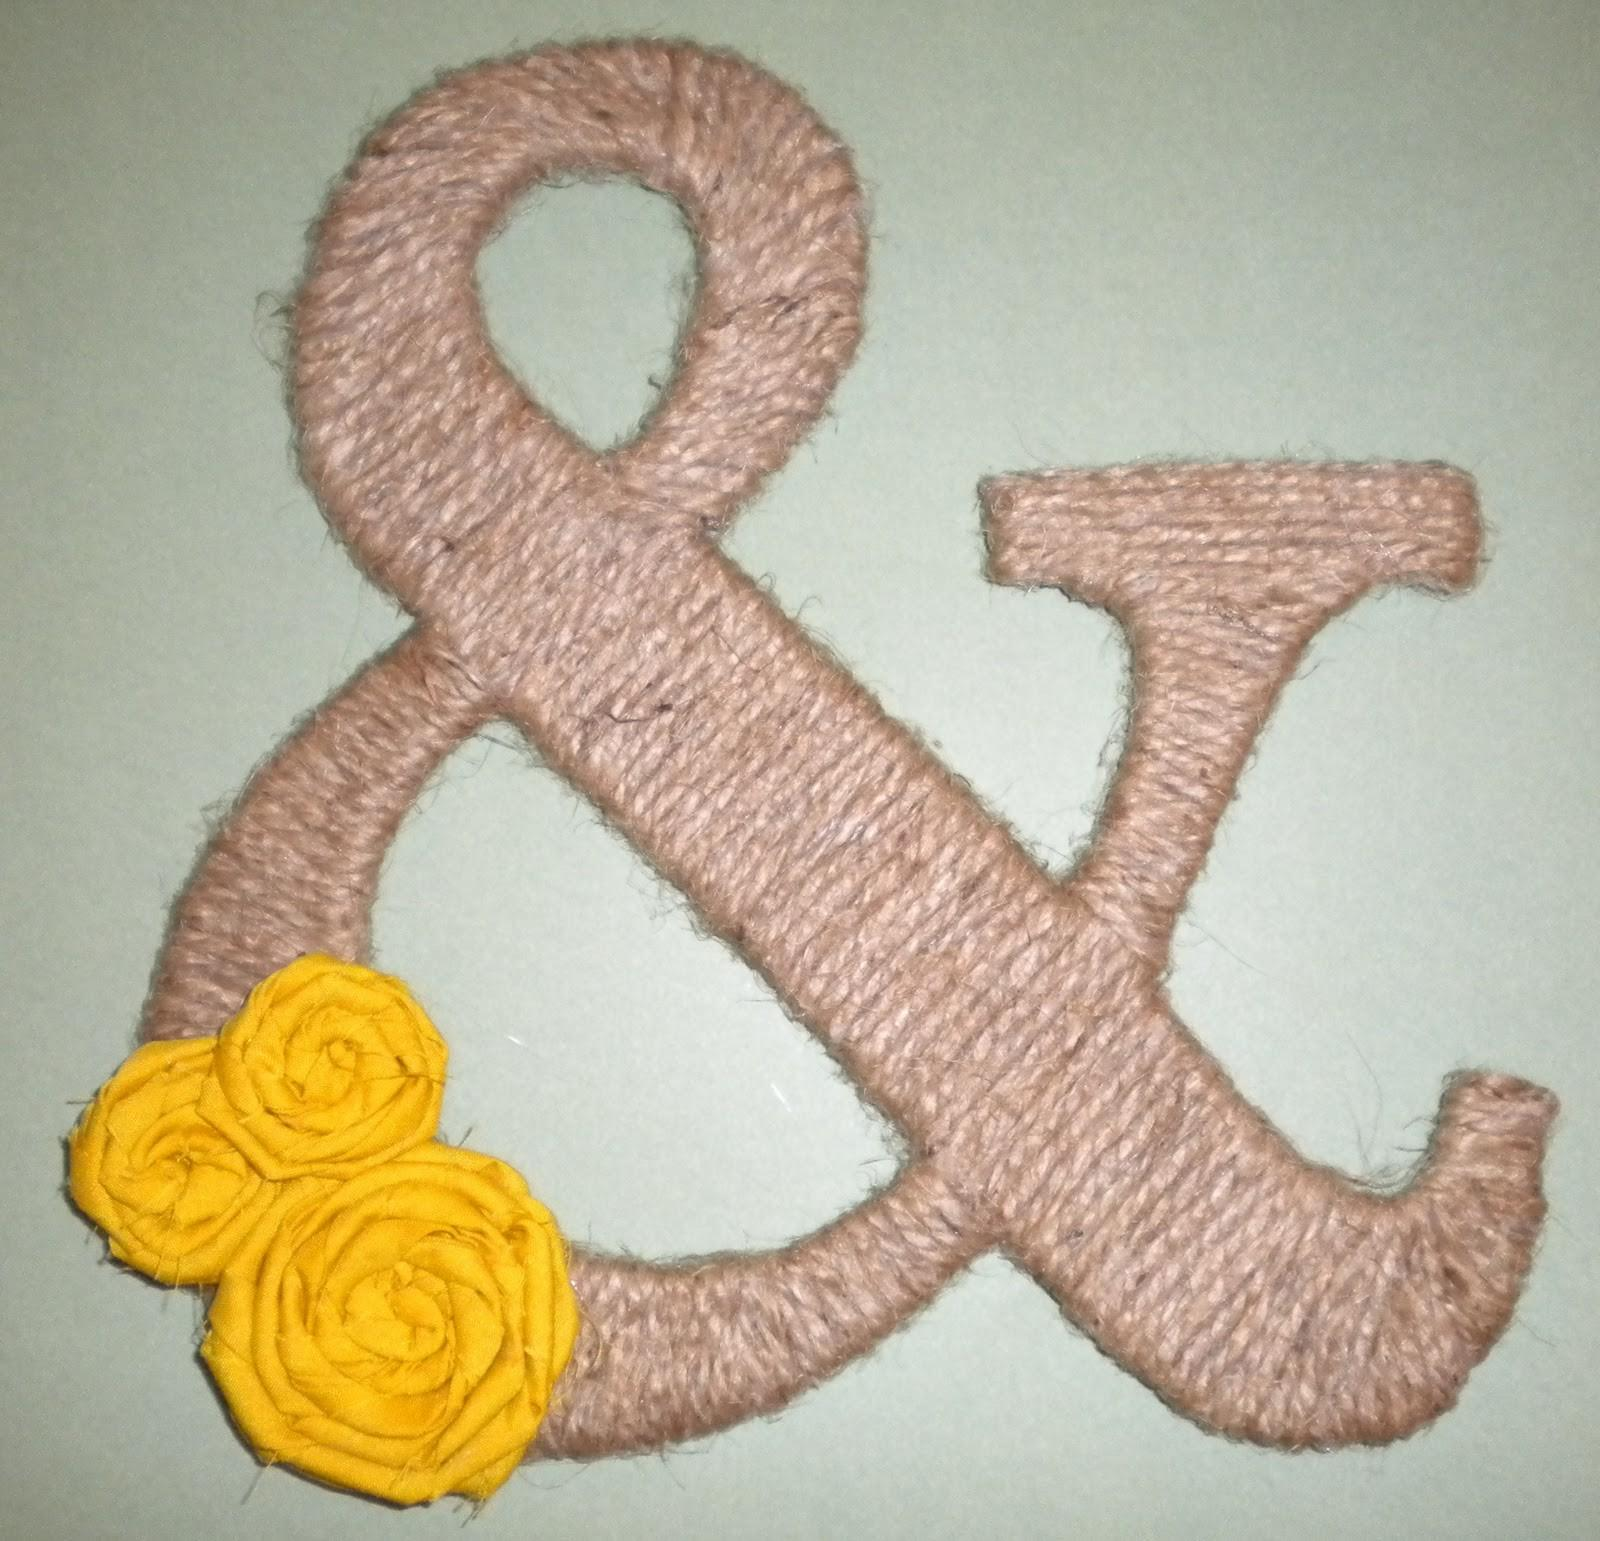 Jute Rope Ampersand Inspired Crafts